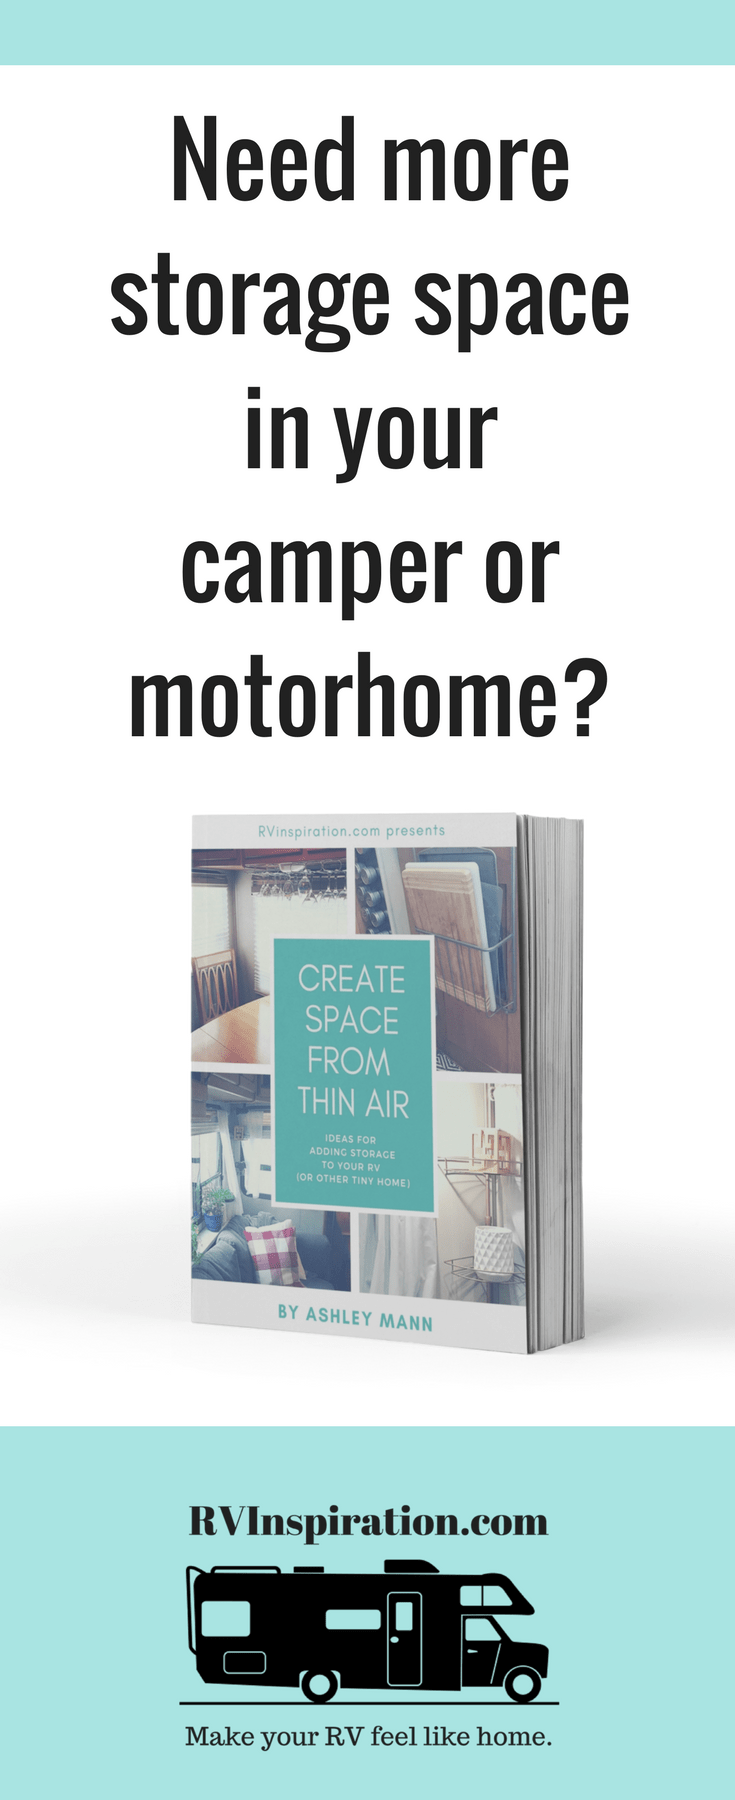 60 Ideas For Adding Storage To Your Camper Motorhome Or Tiny Home